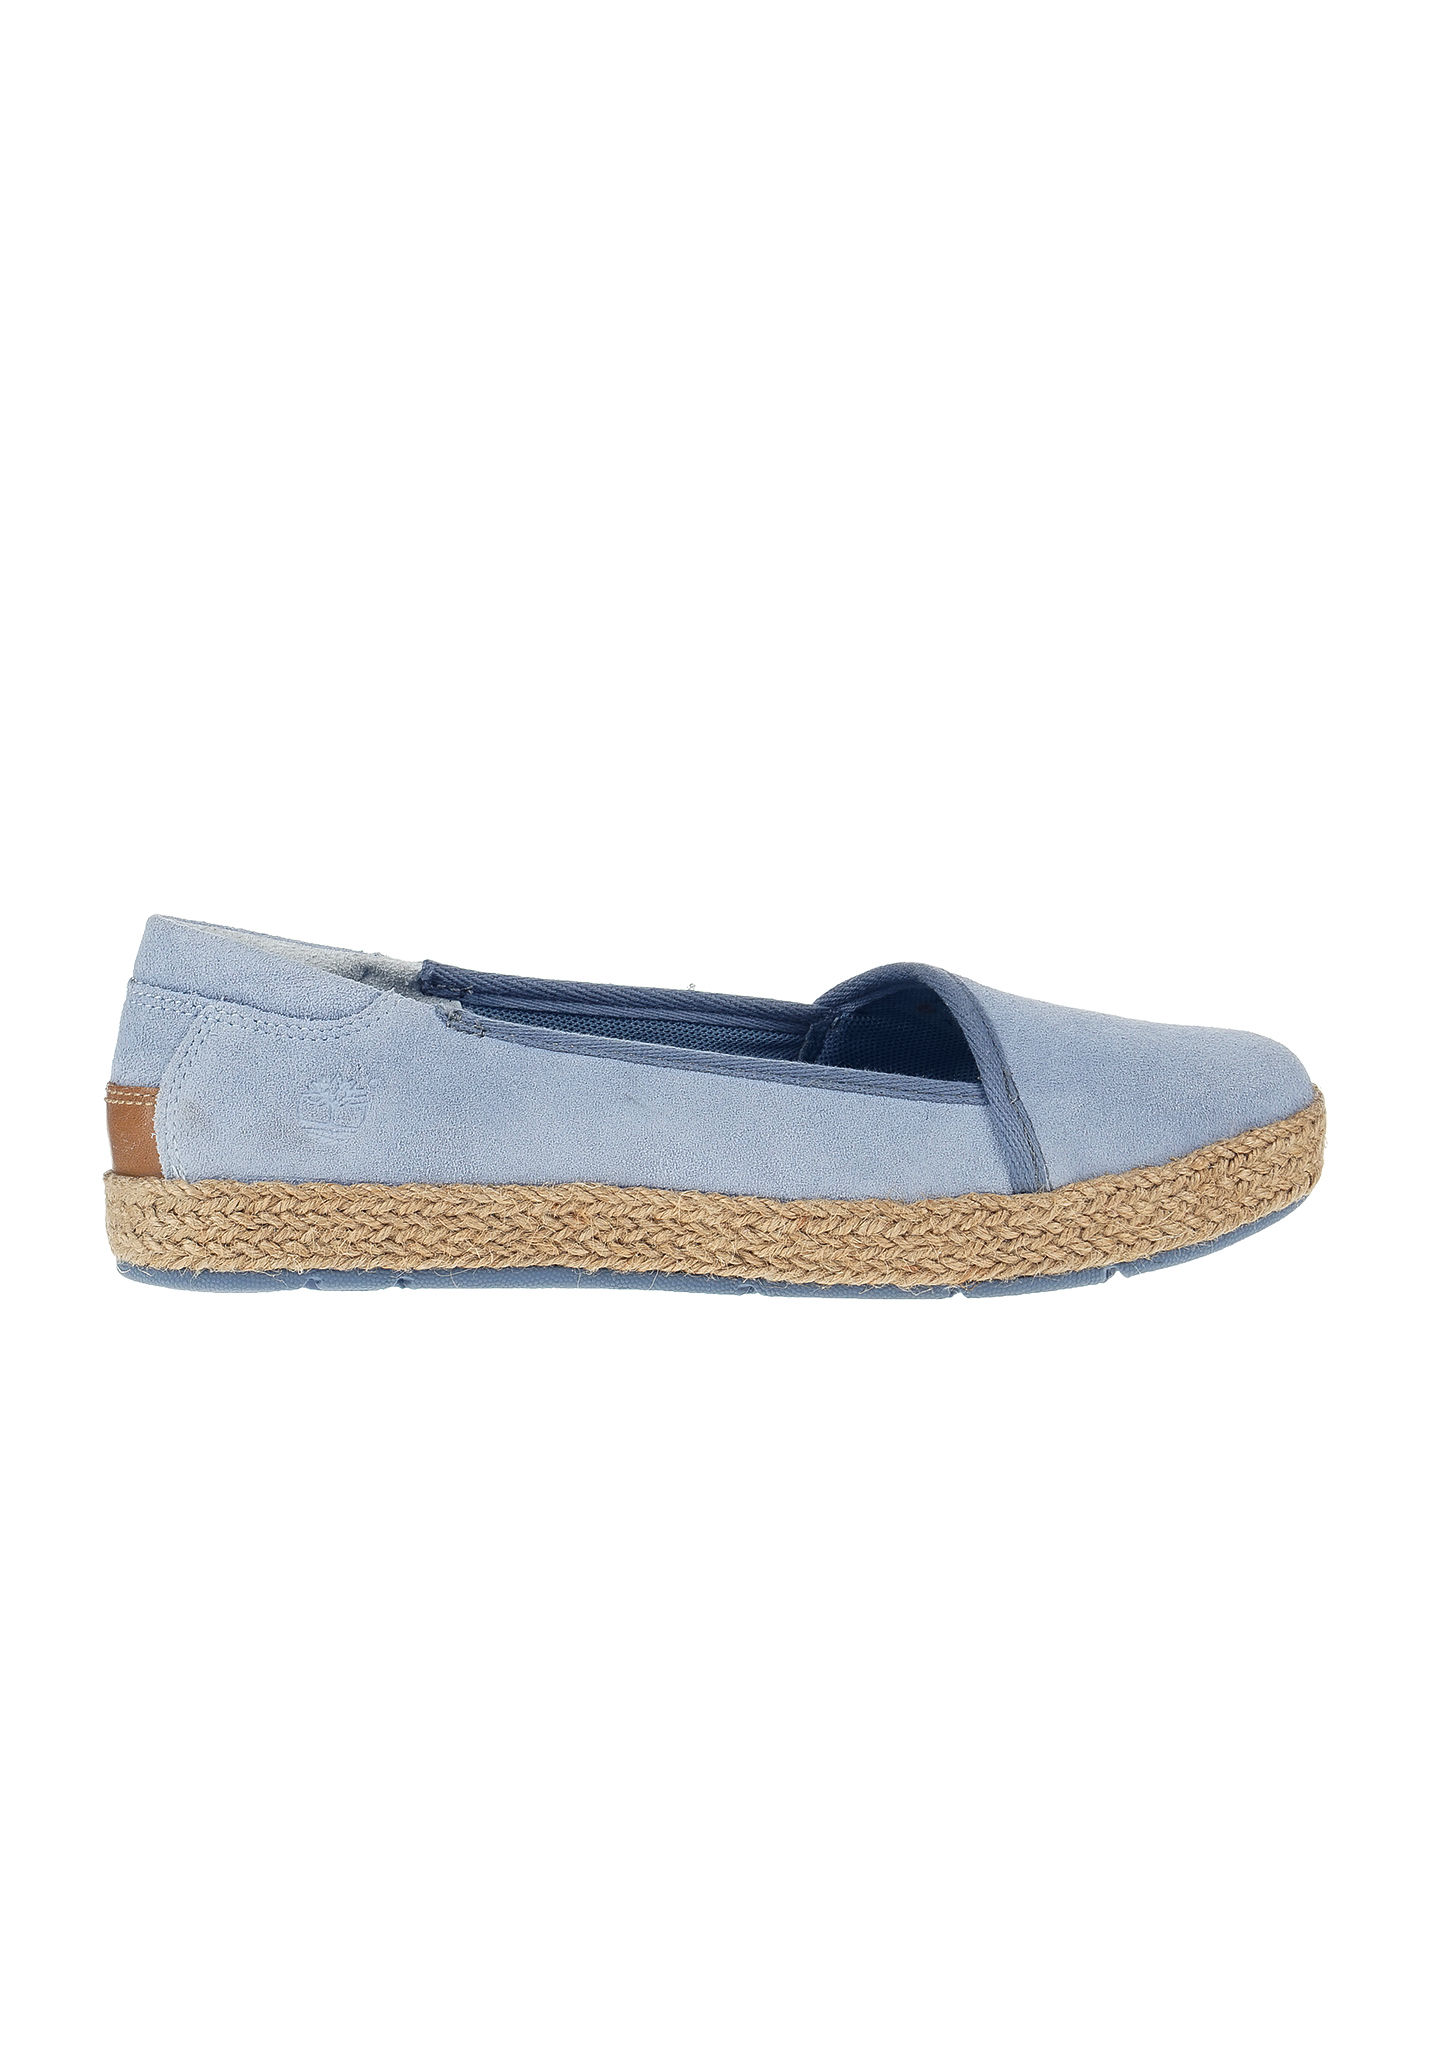 TIMBERLAND Casco Bay Lthr Slip On - Fashion Shoes for Women - Blue - Planet  Sports 4a0d6e962